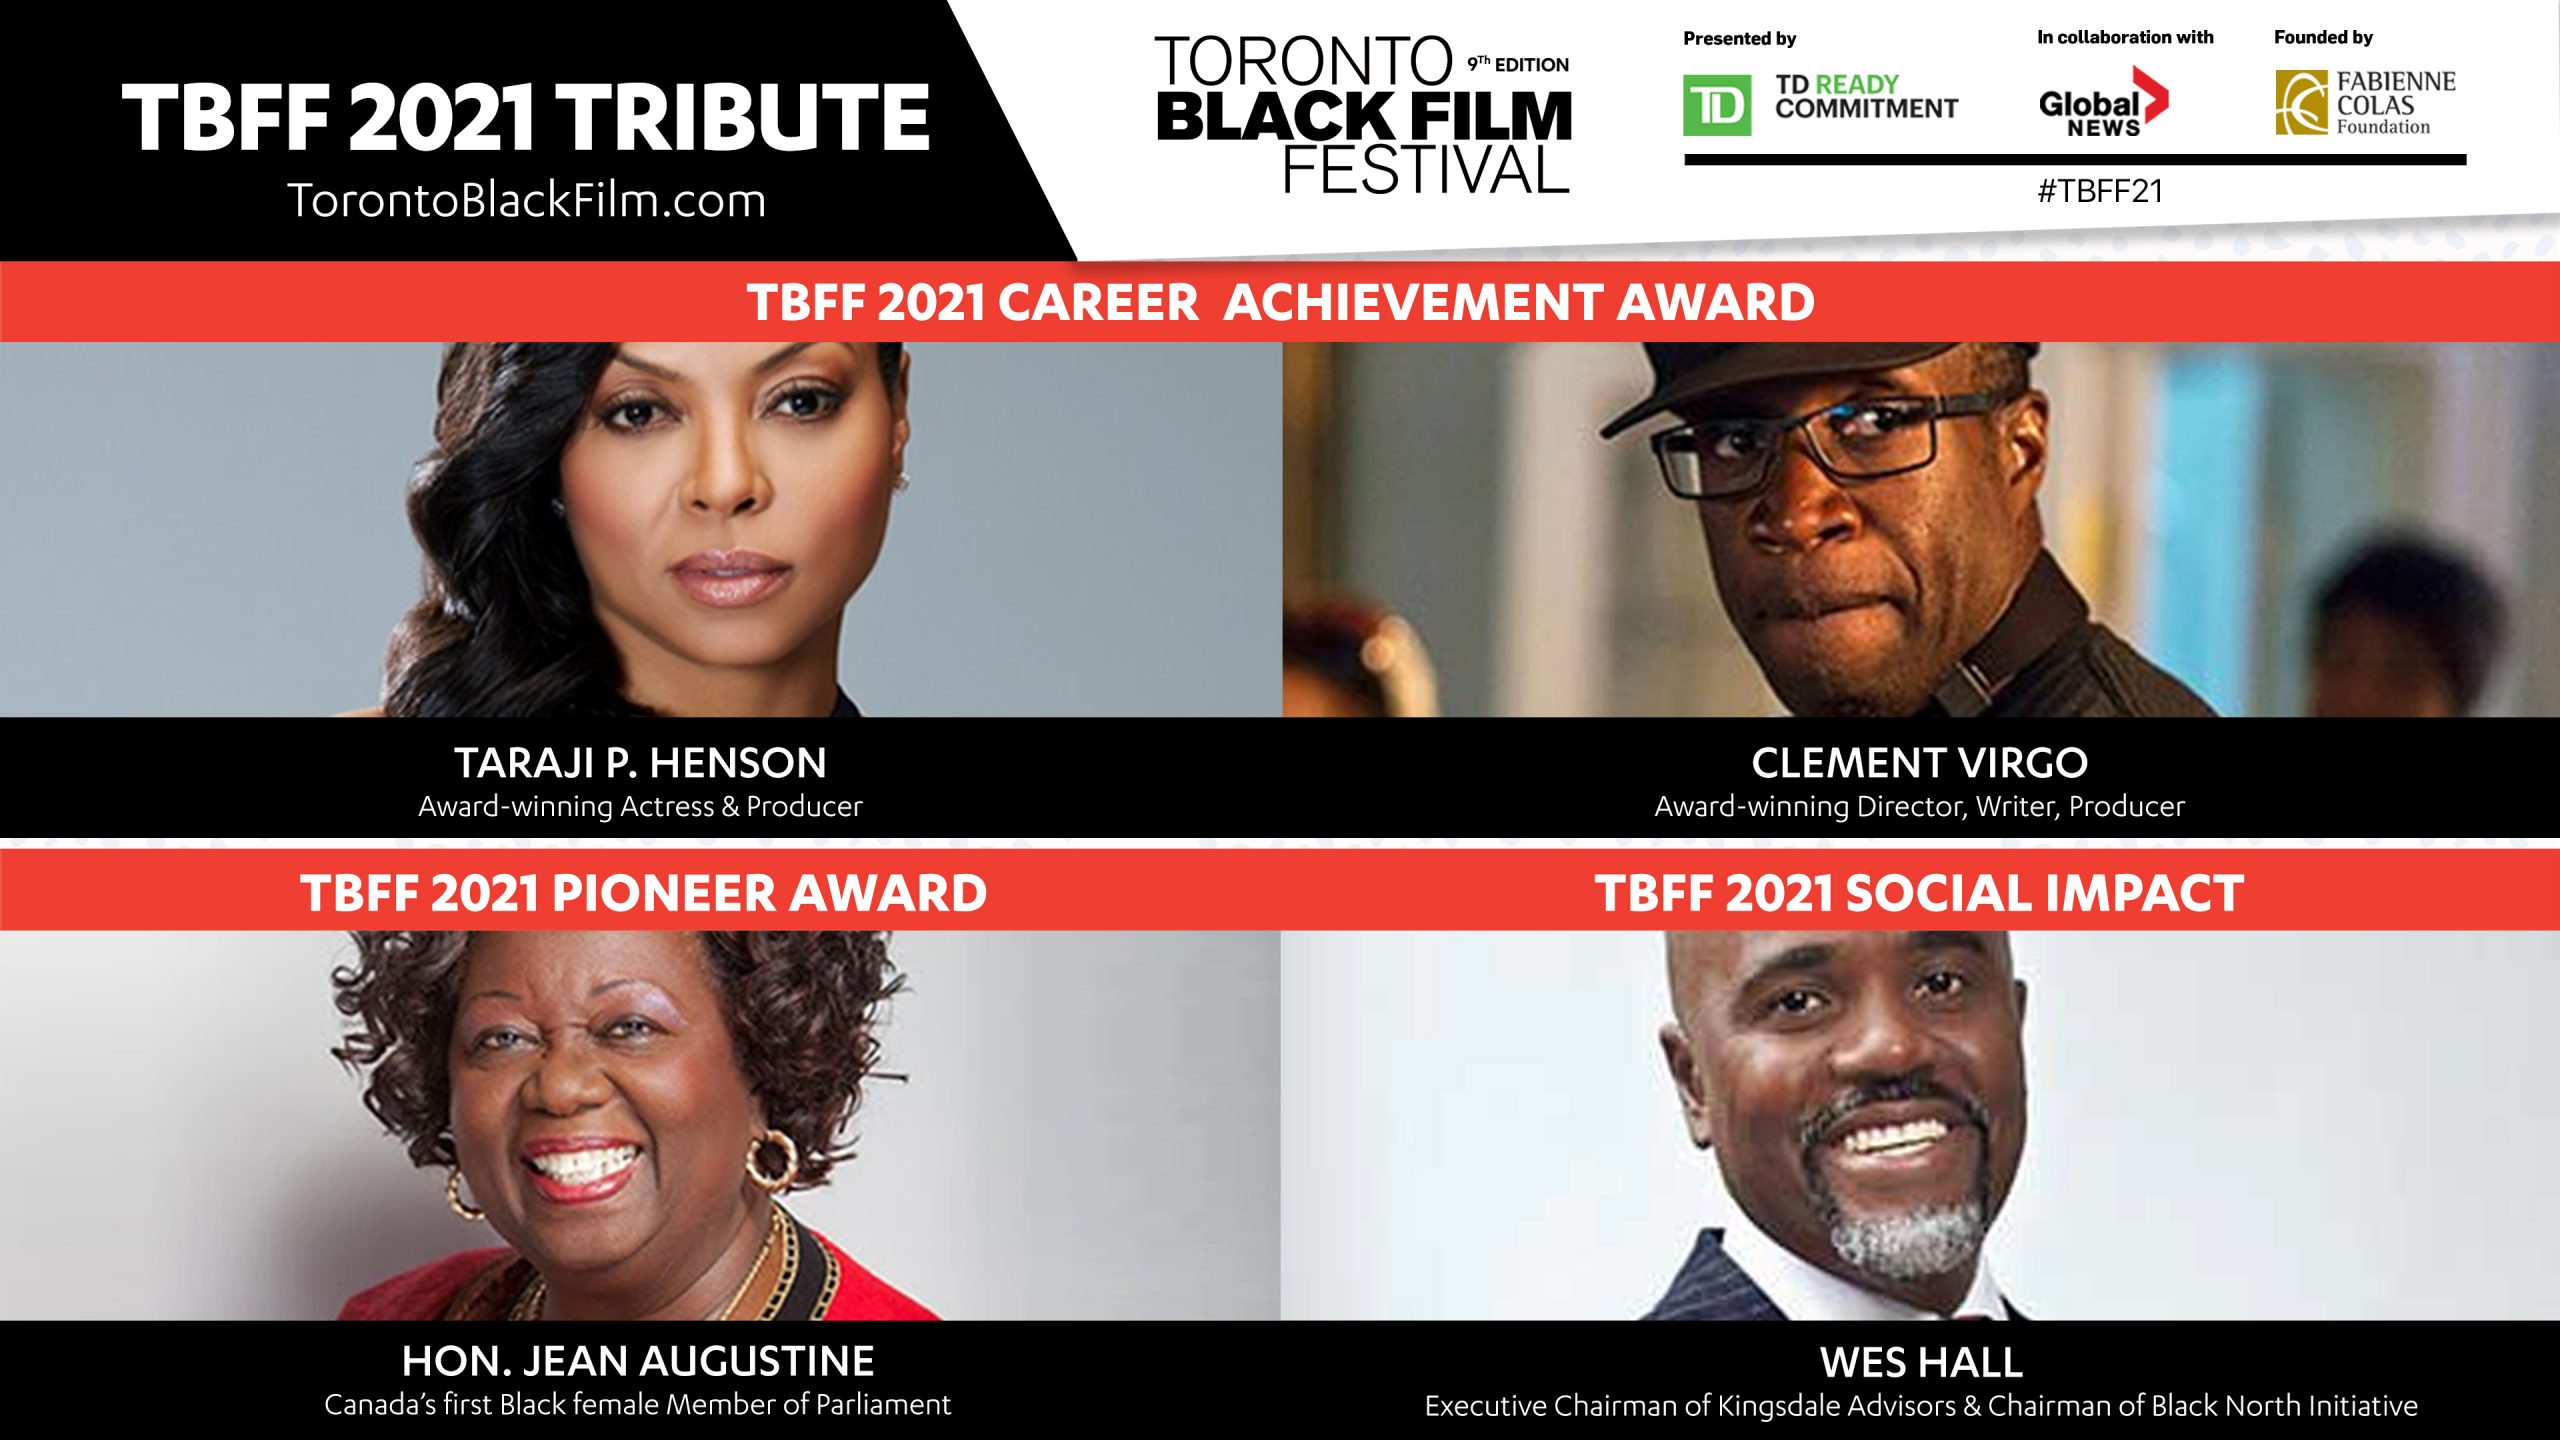 TARAJI P. HENSON, CLEMENT VIRGO, JEAN AUGUSTINE, WES HALL  to receive top honors at the 2021 Toronto Black Film Festival